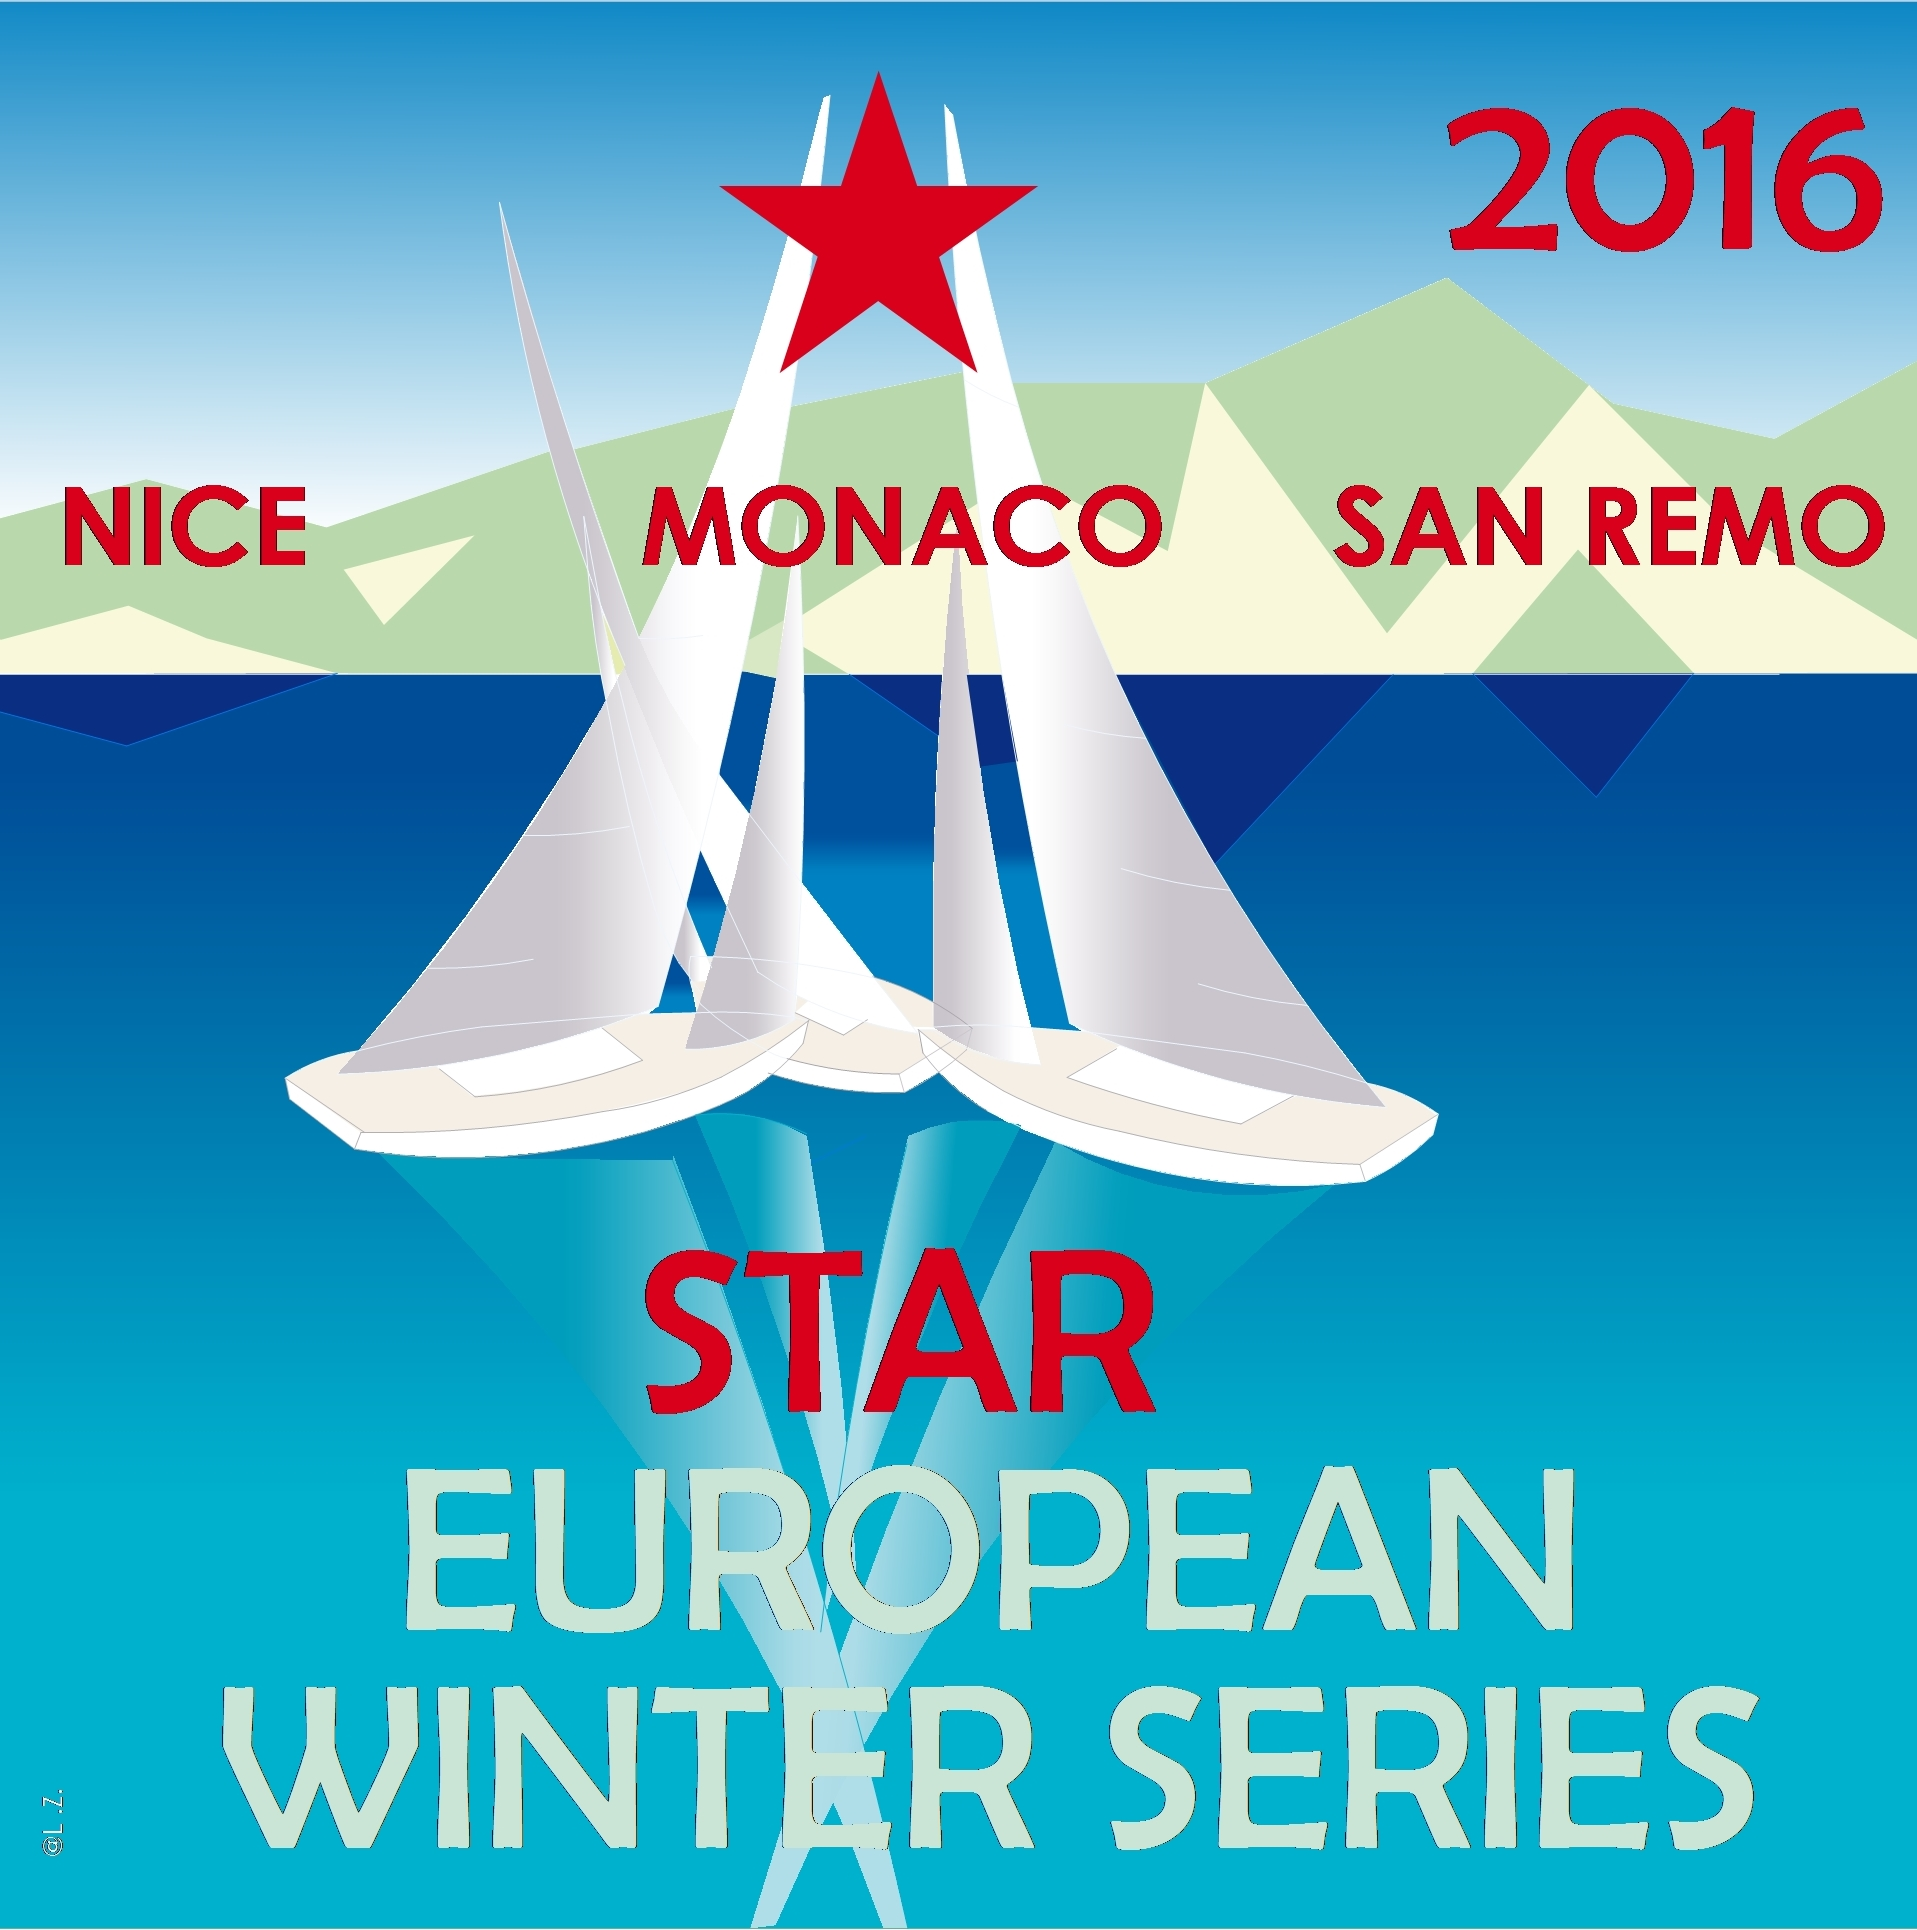 LOGO Europen Winter Series 2016